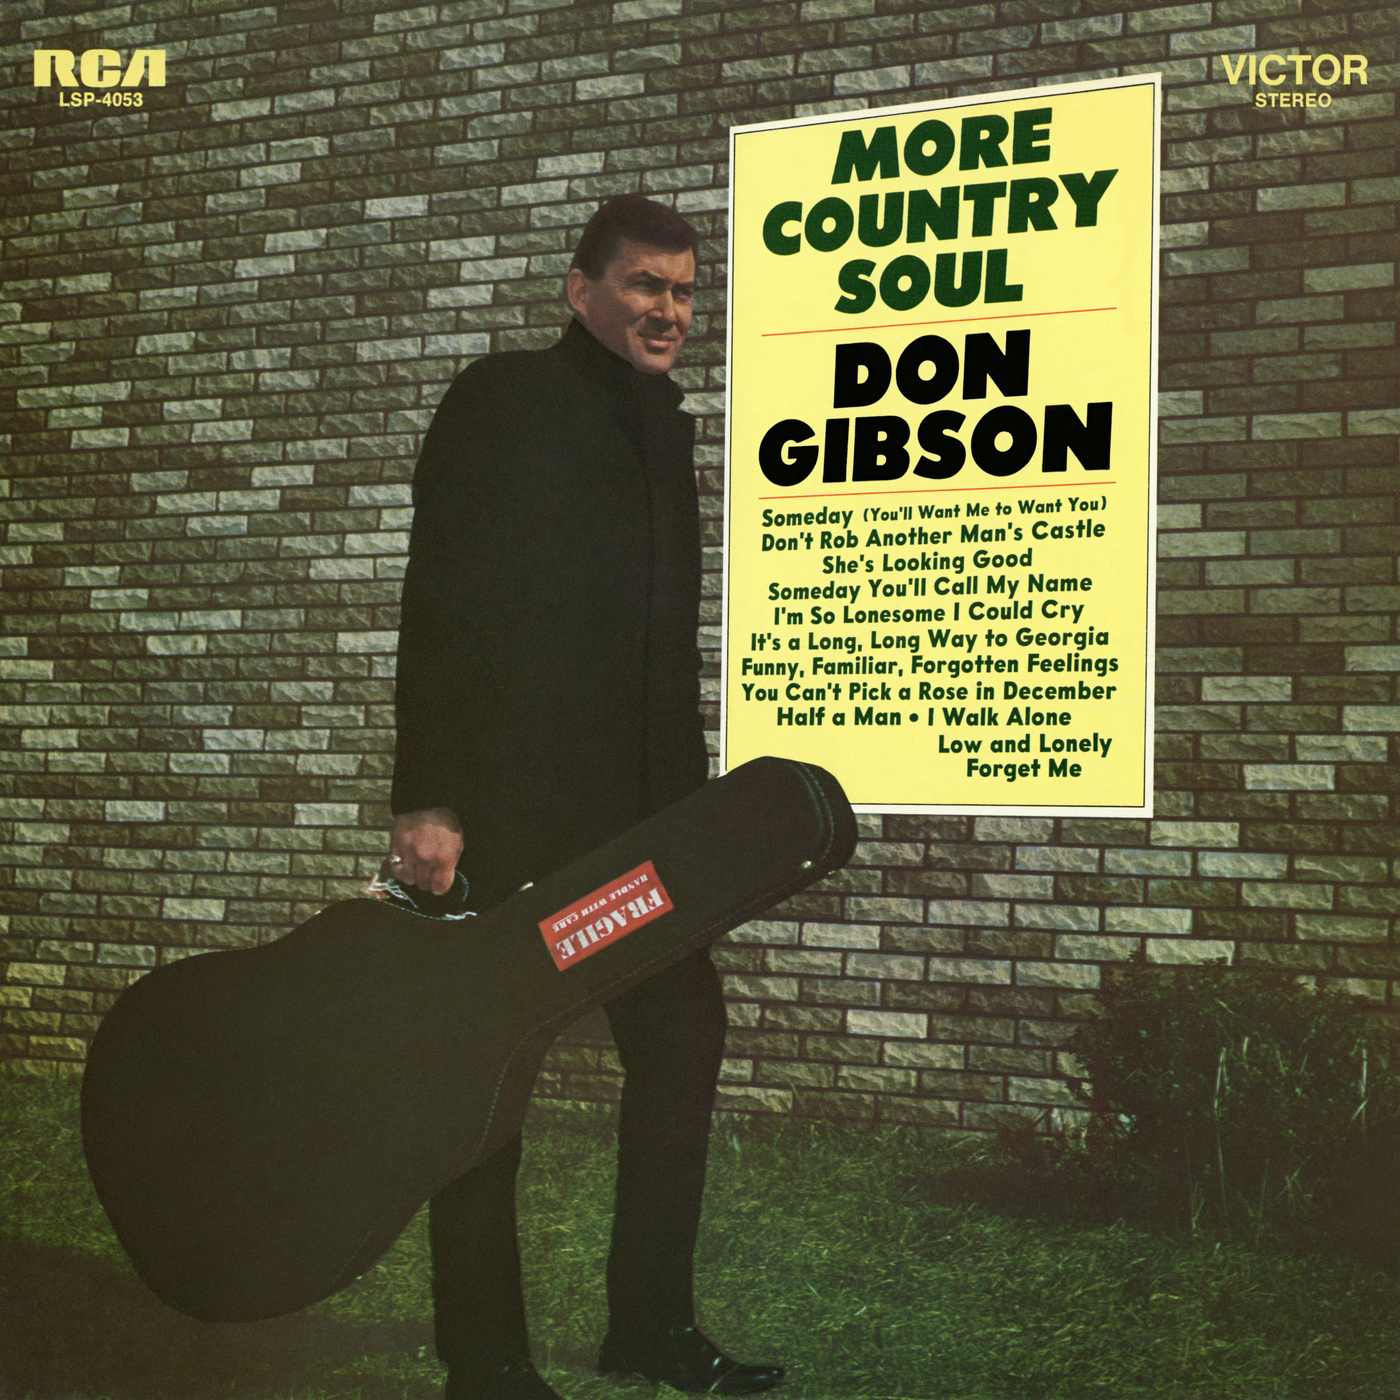 More Country Soul - Don Gibson